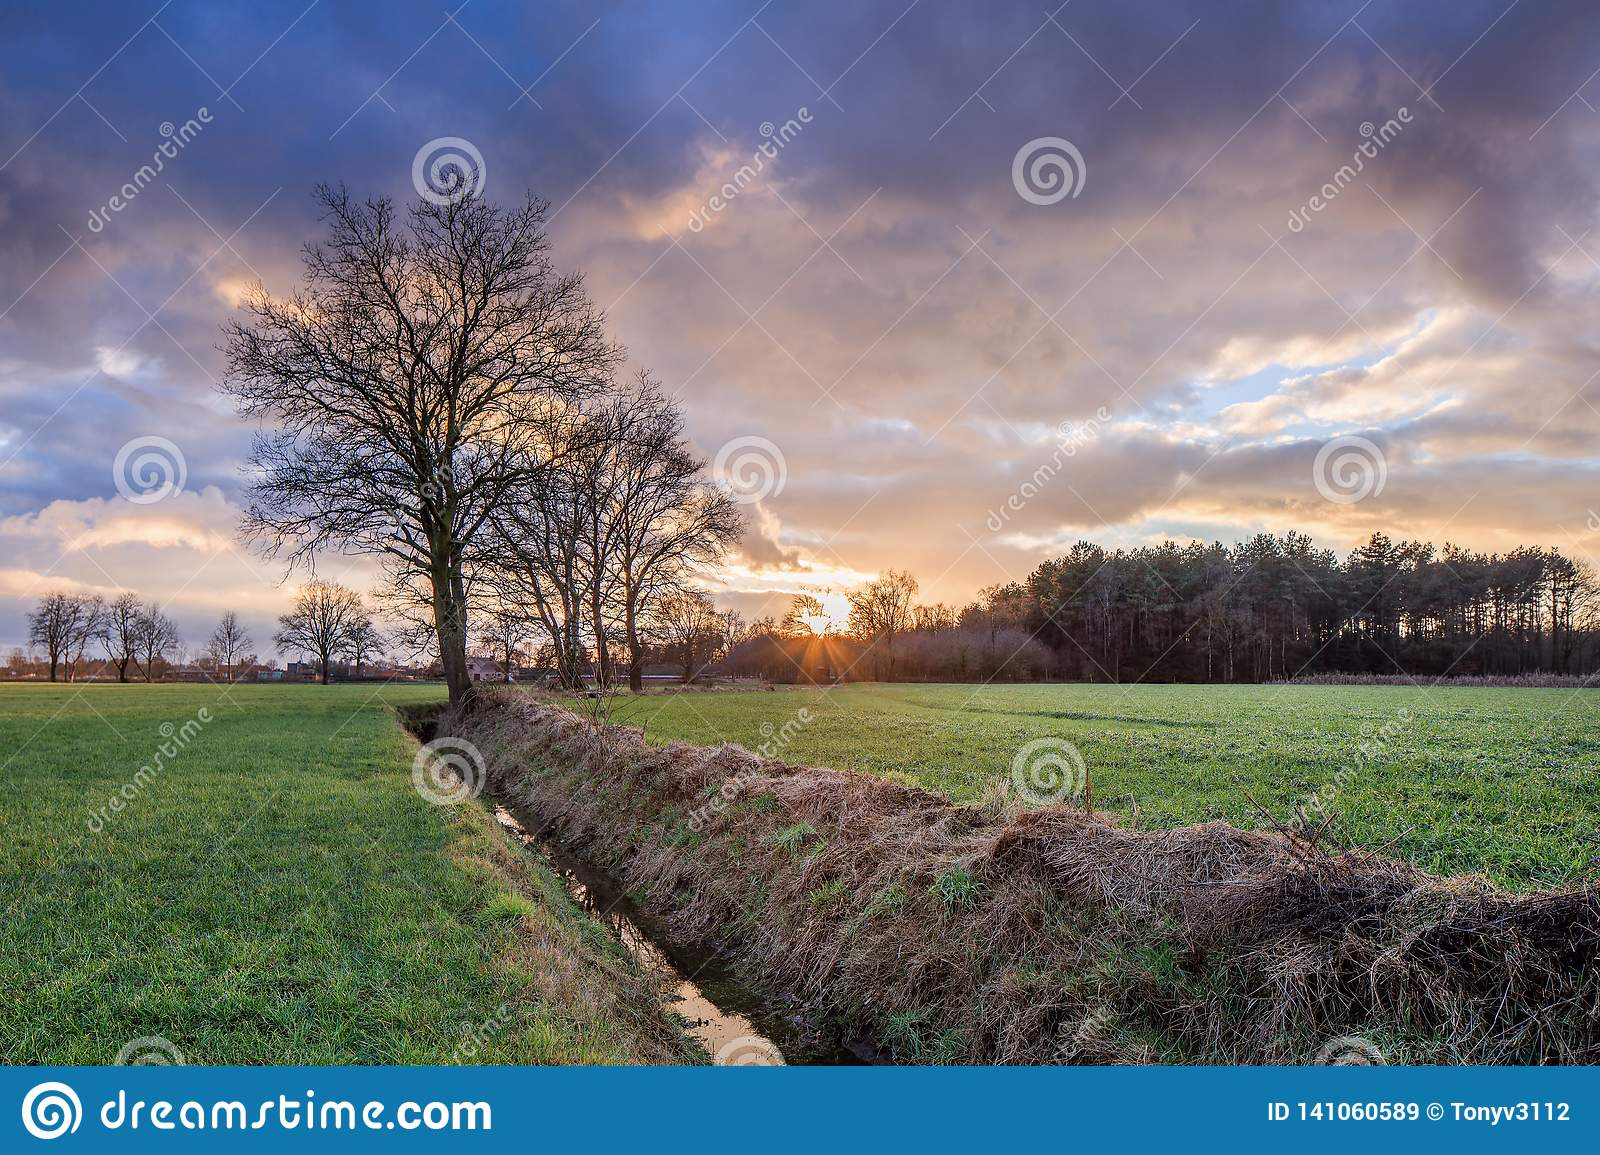 Rural scenery, field with trees near a ditch and colorful sunset with dramatic clouds, Weelde, Belgium